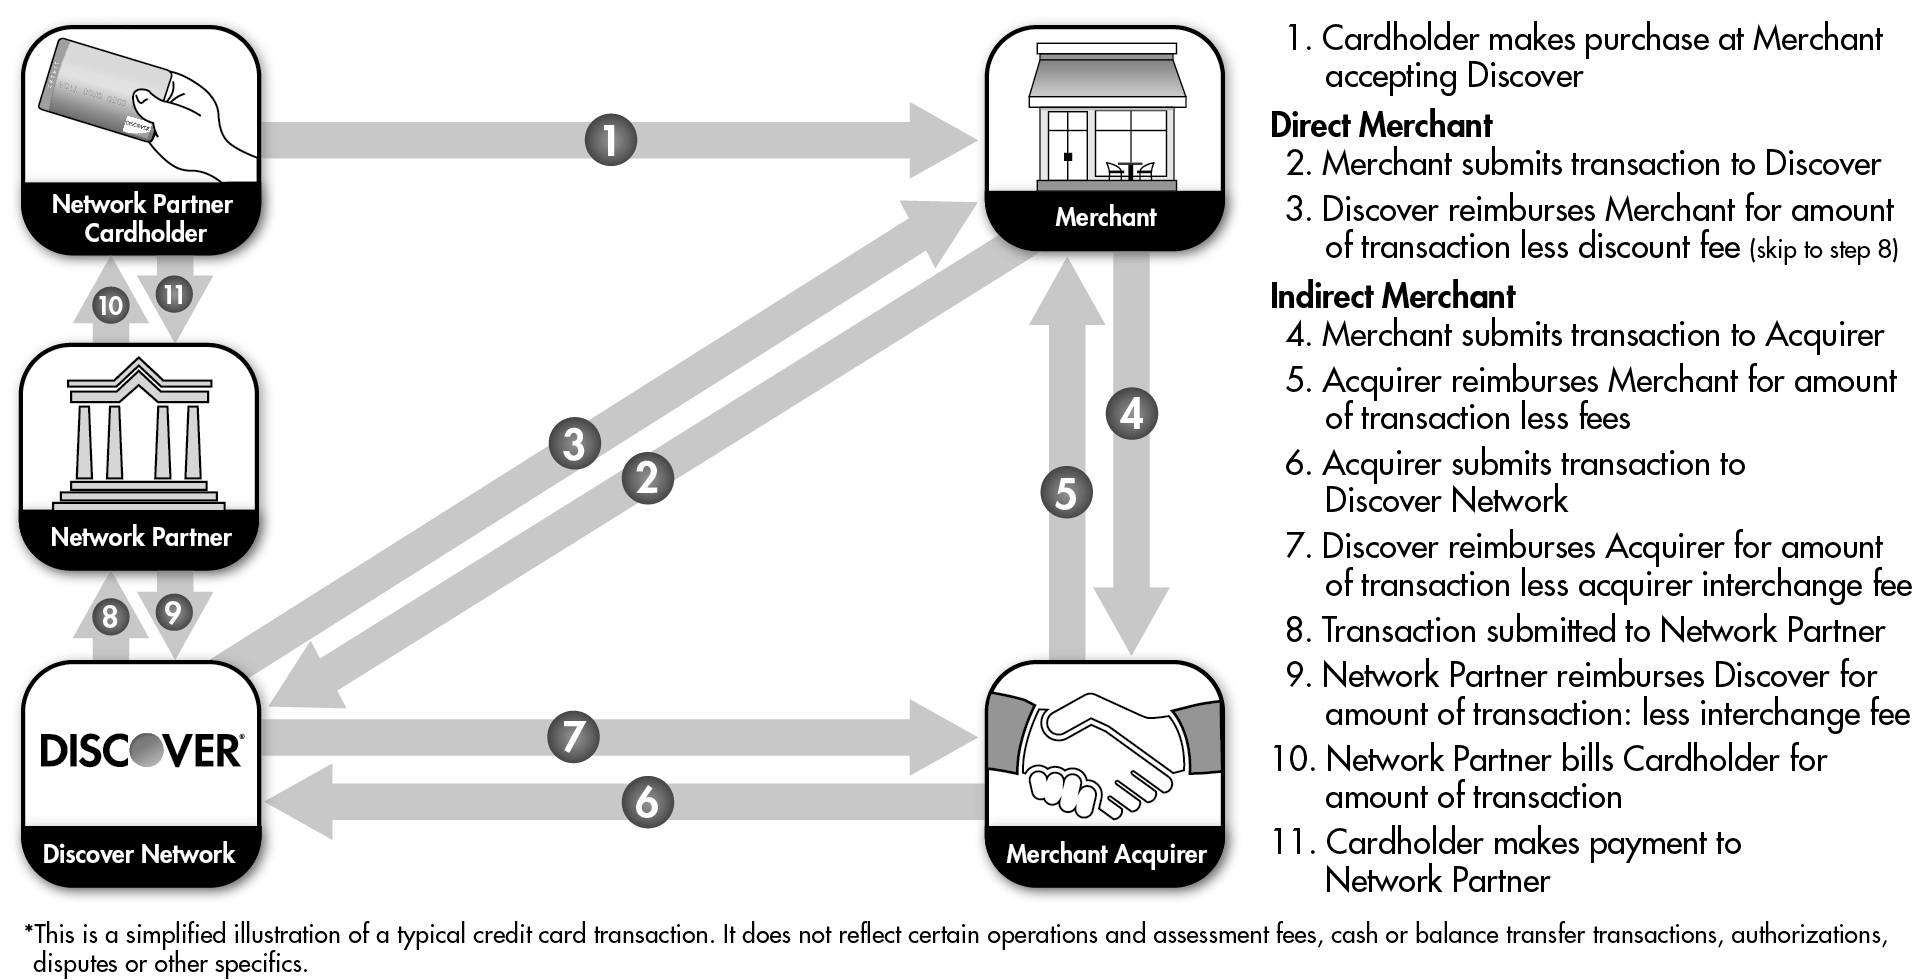 The following chart * shows the network partner